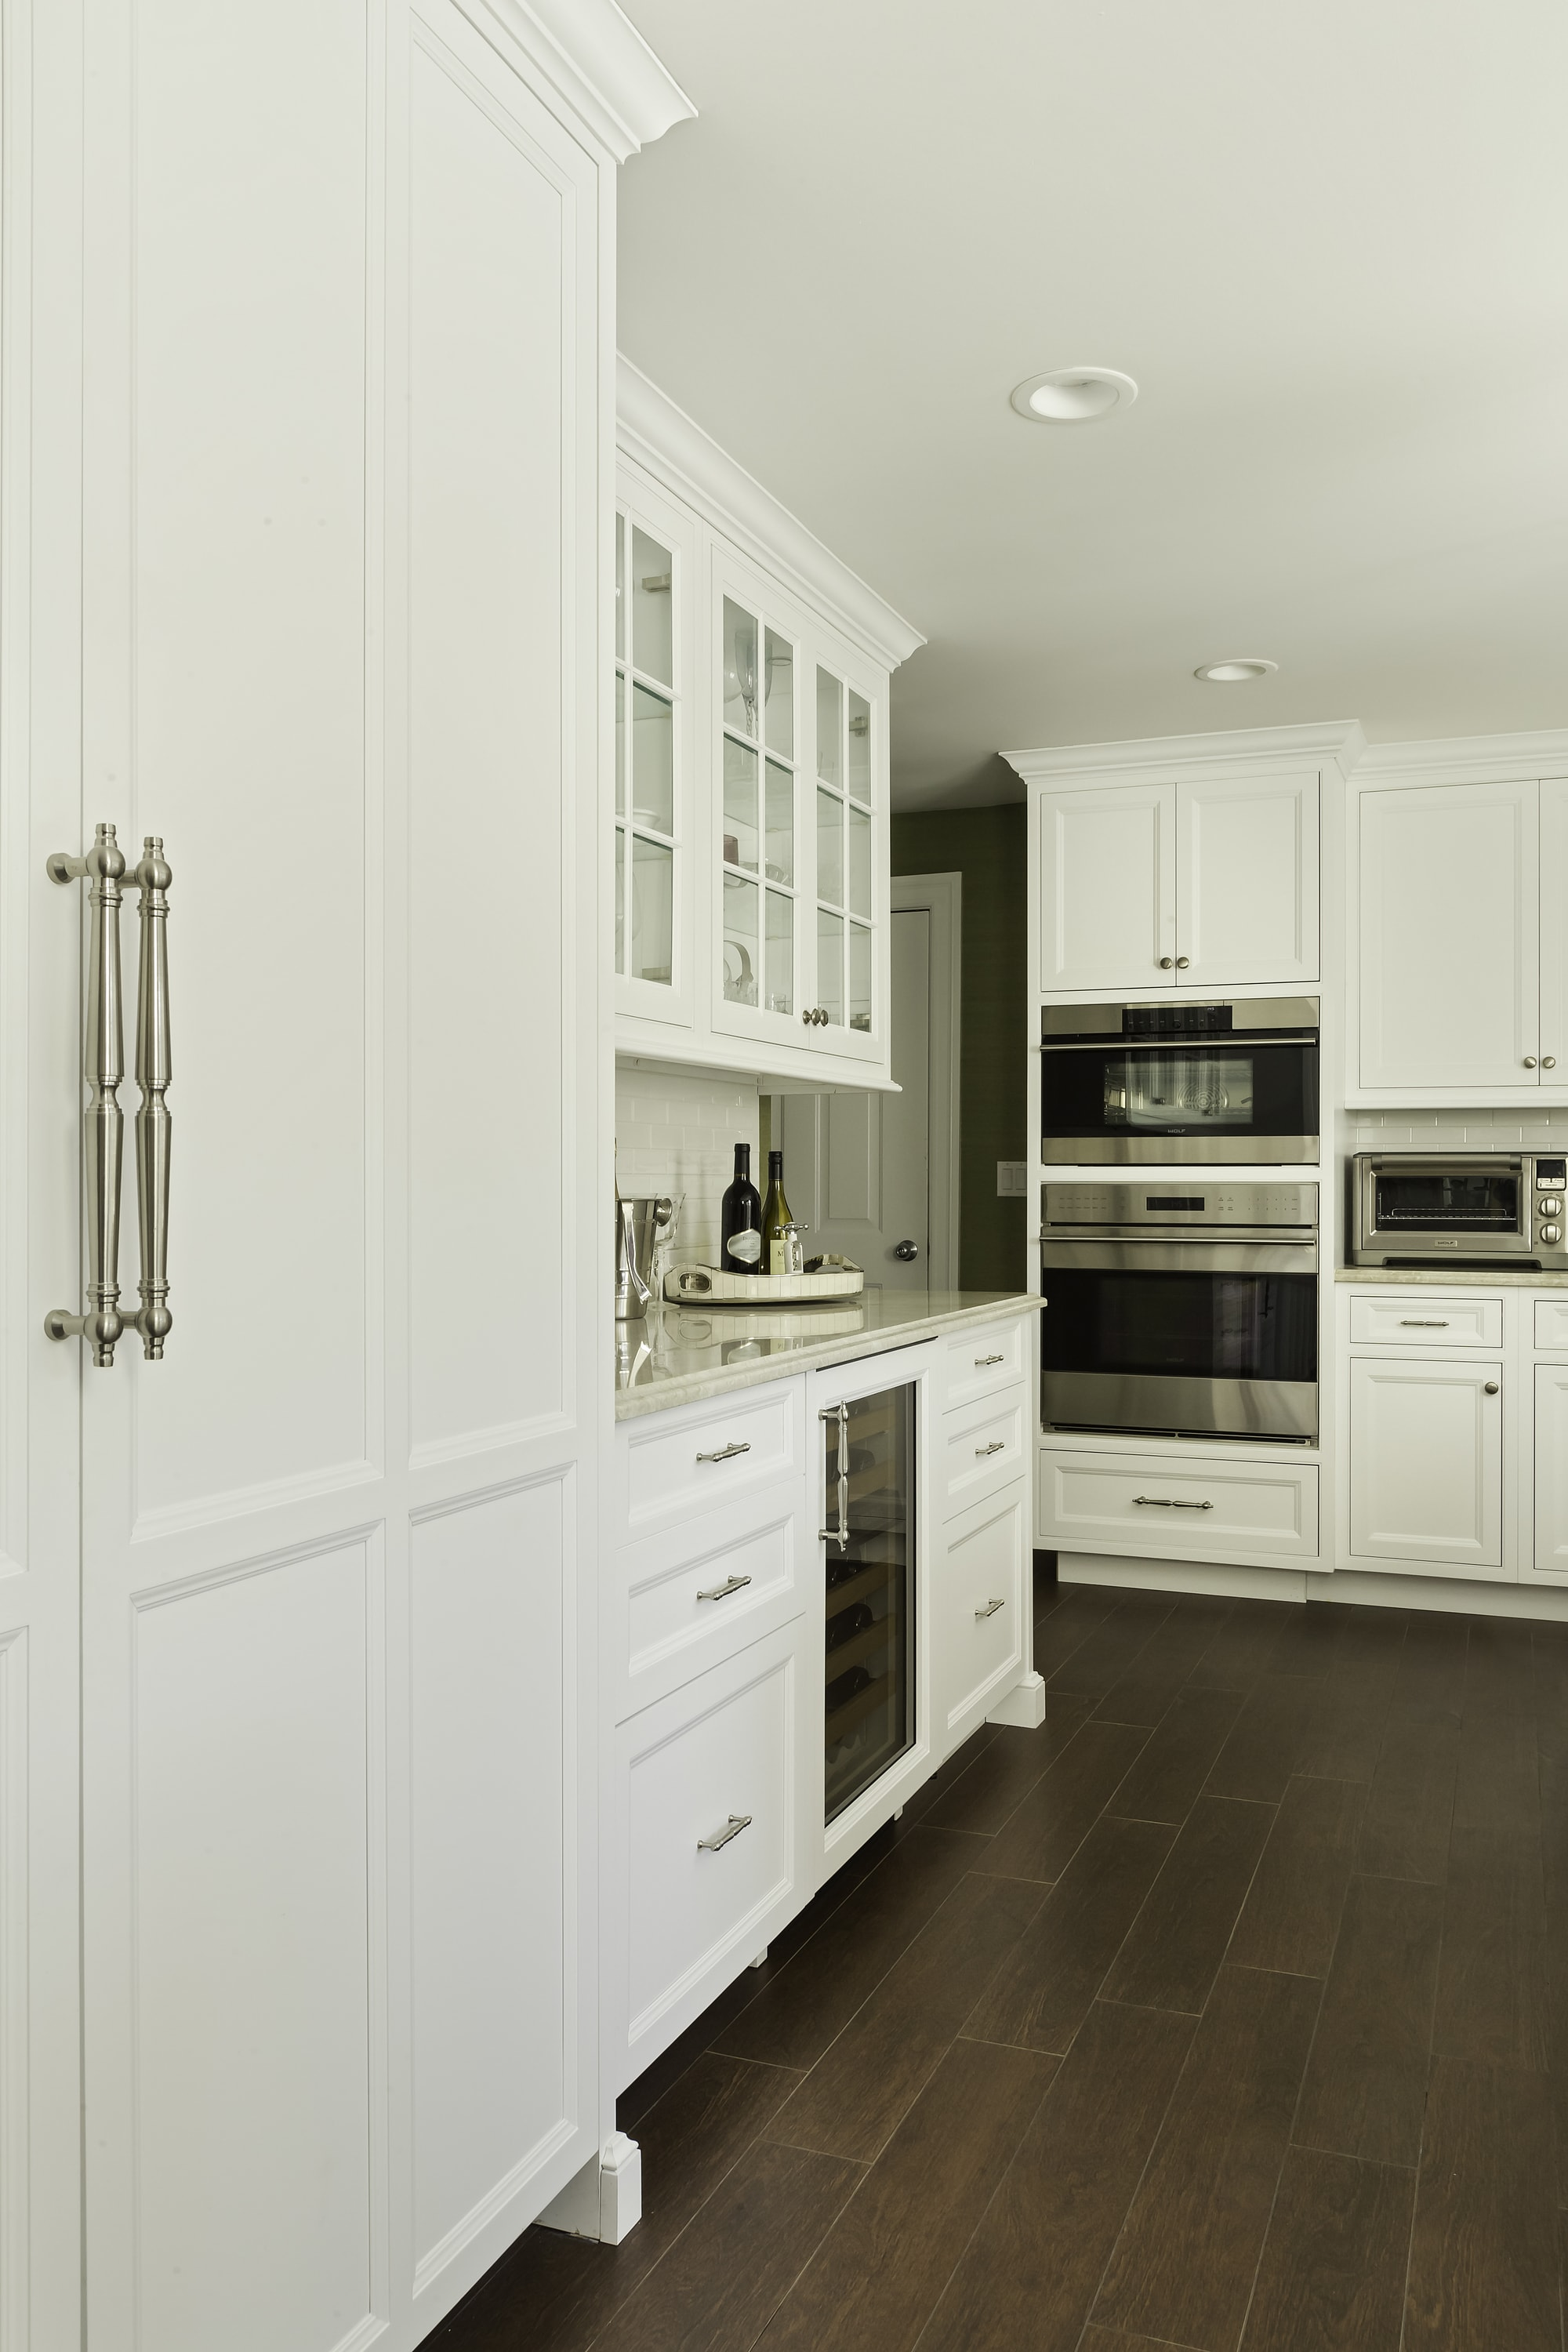 Transitional style kitchen with large cabinet